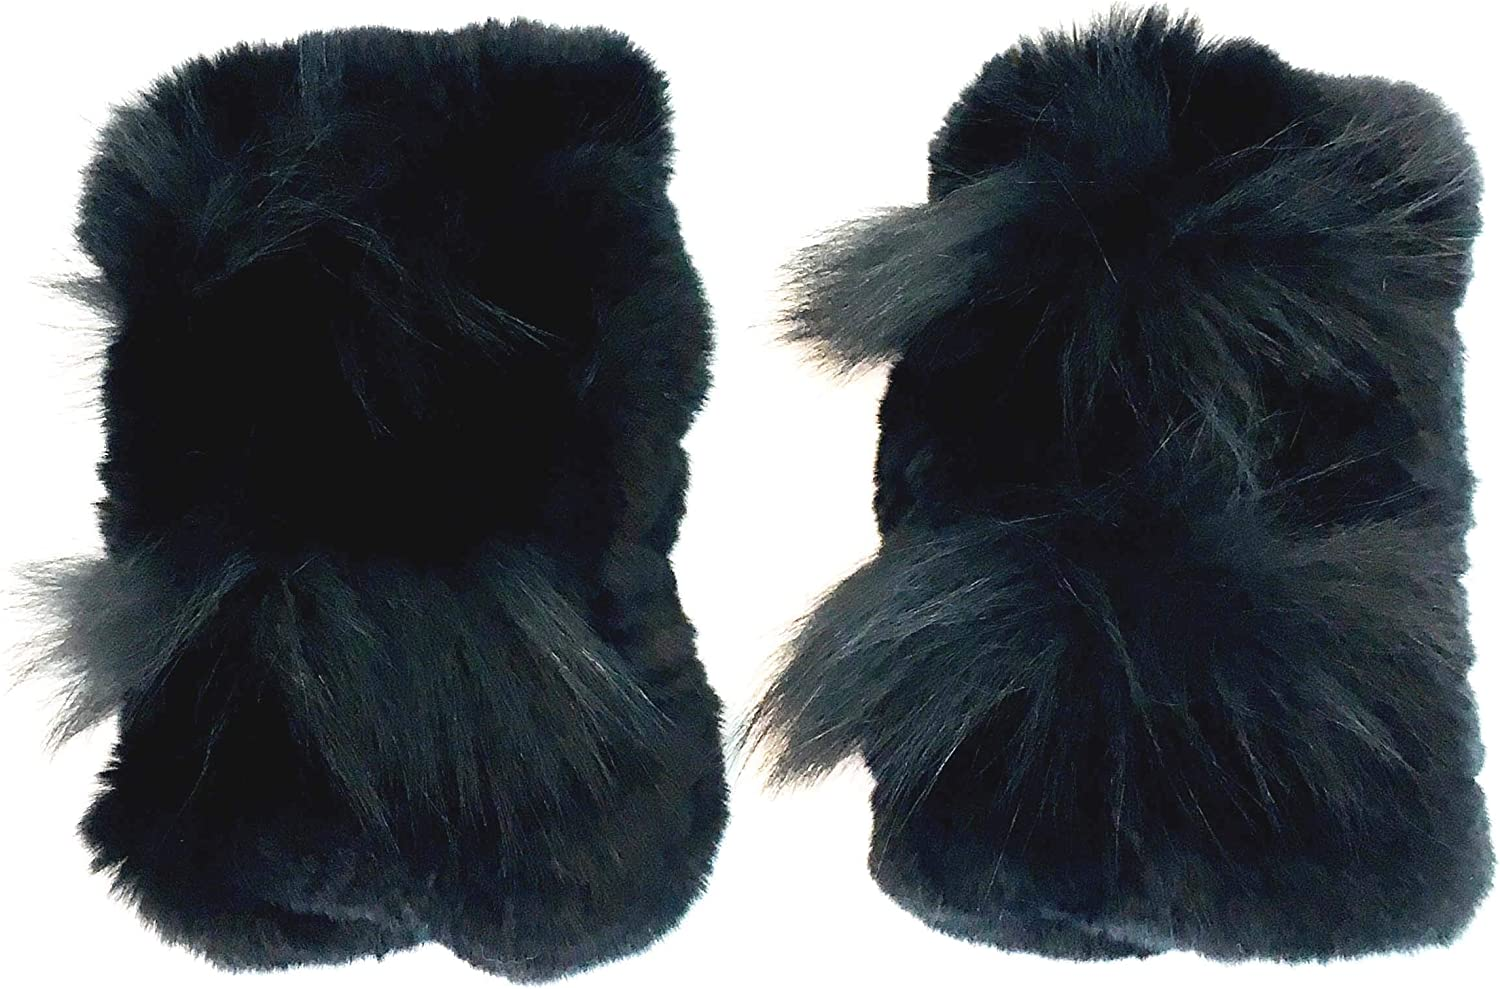 Surell Black Rex Rabbit Fur Textile Knit Fingerless Gloves with Fox Detail - Winter Texting Mittens - Luxury Cold Weather Clothing